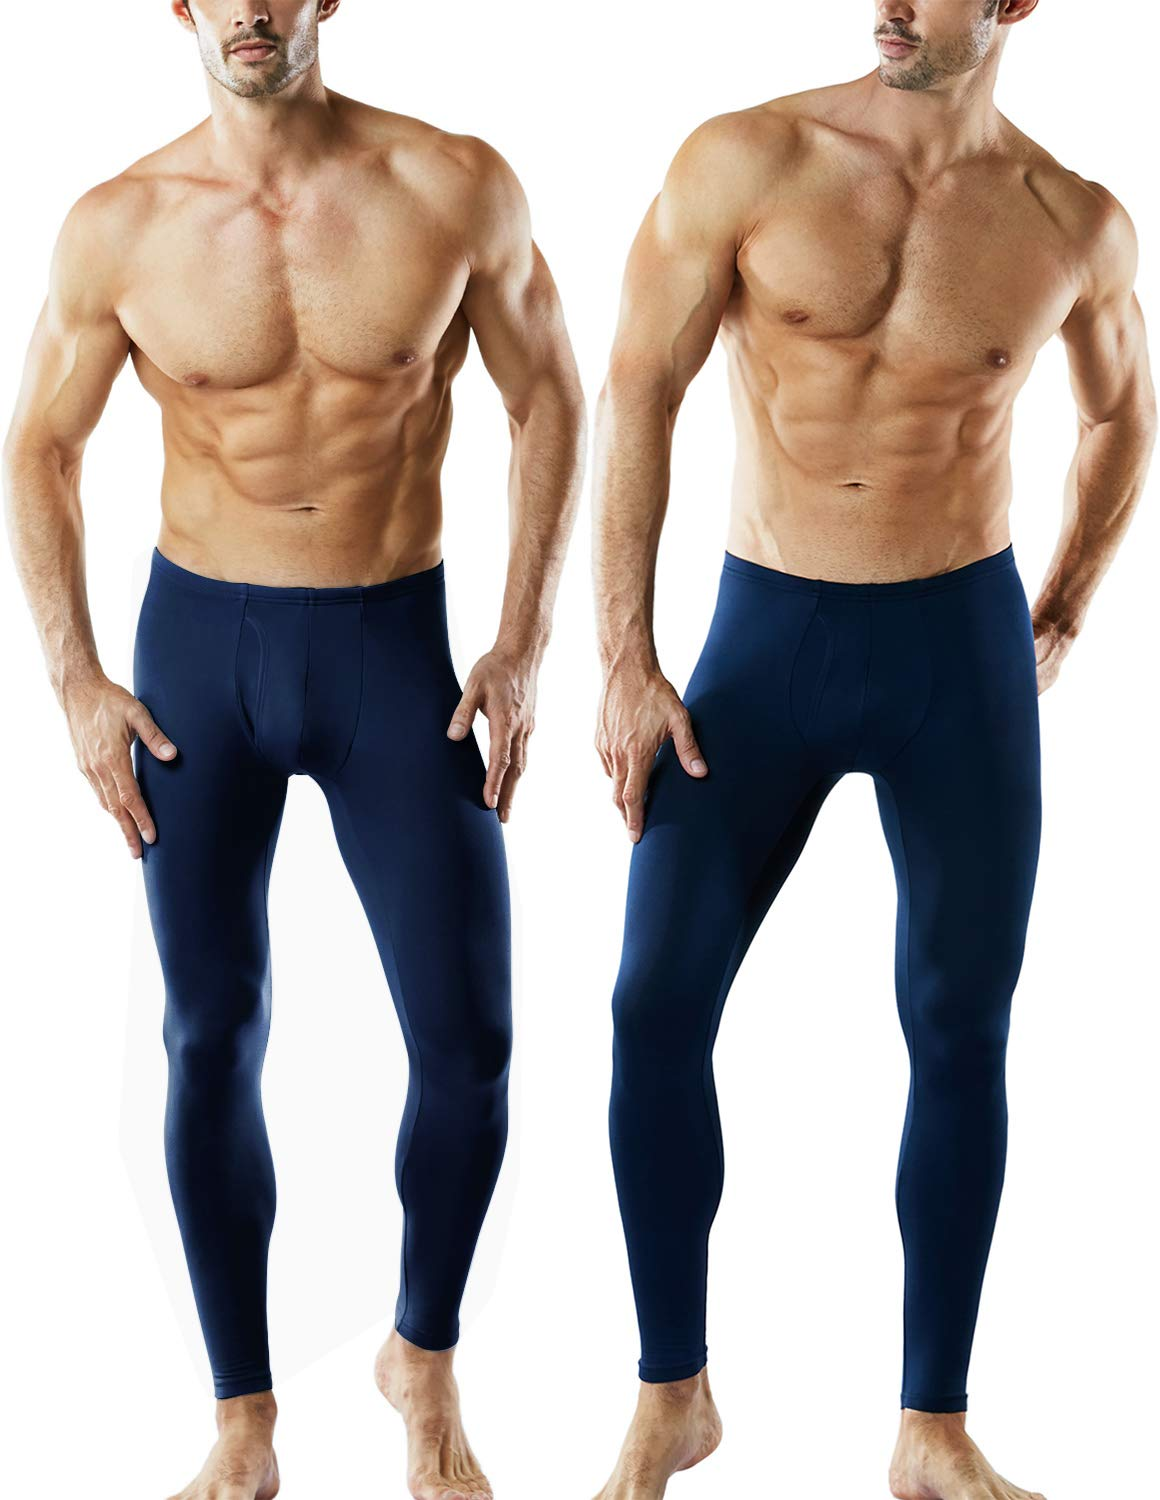 TSLA Men's 2 Pack Thermal Microfiber Fleece Lined Bottom Underwear Long Johns Stretchy with Fly, Thermal Fly-Front 2pack(mhb101) - Navy, Large by TSLA